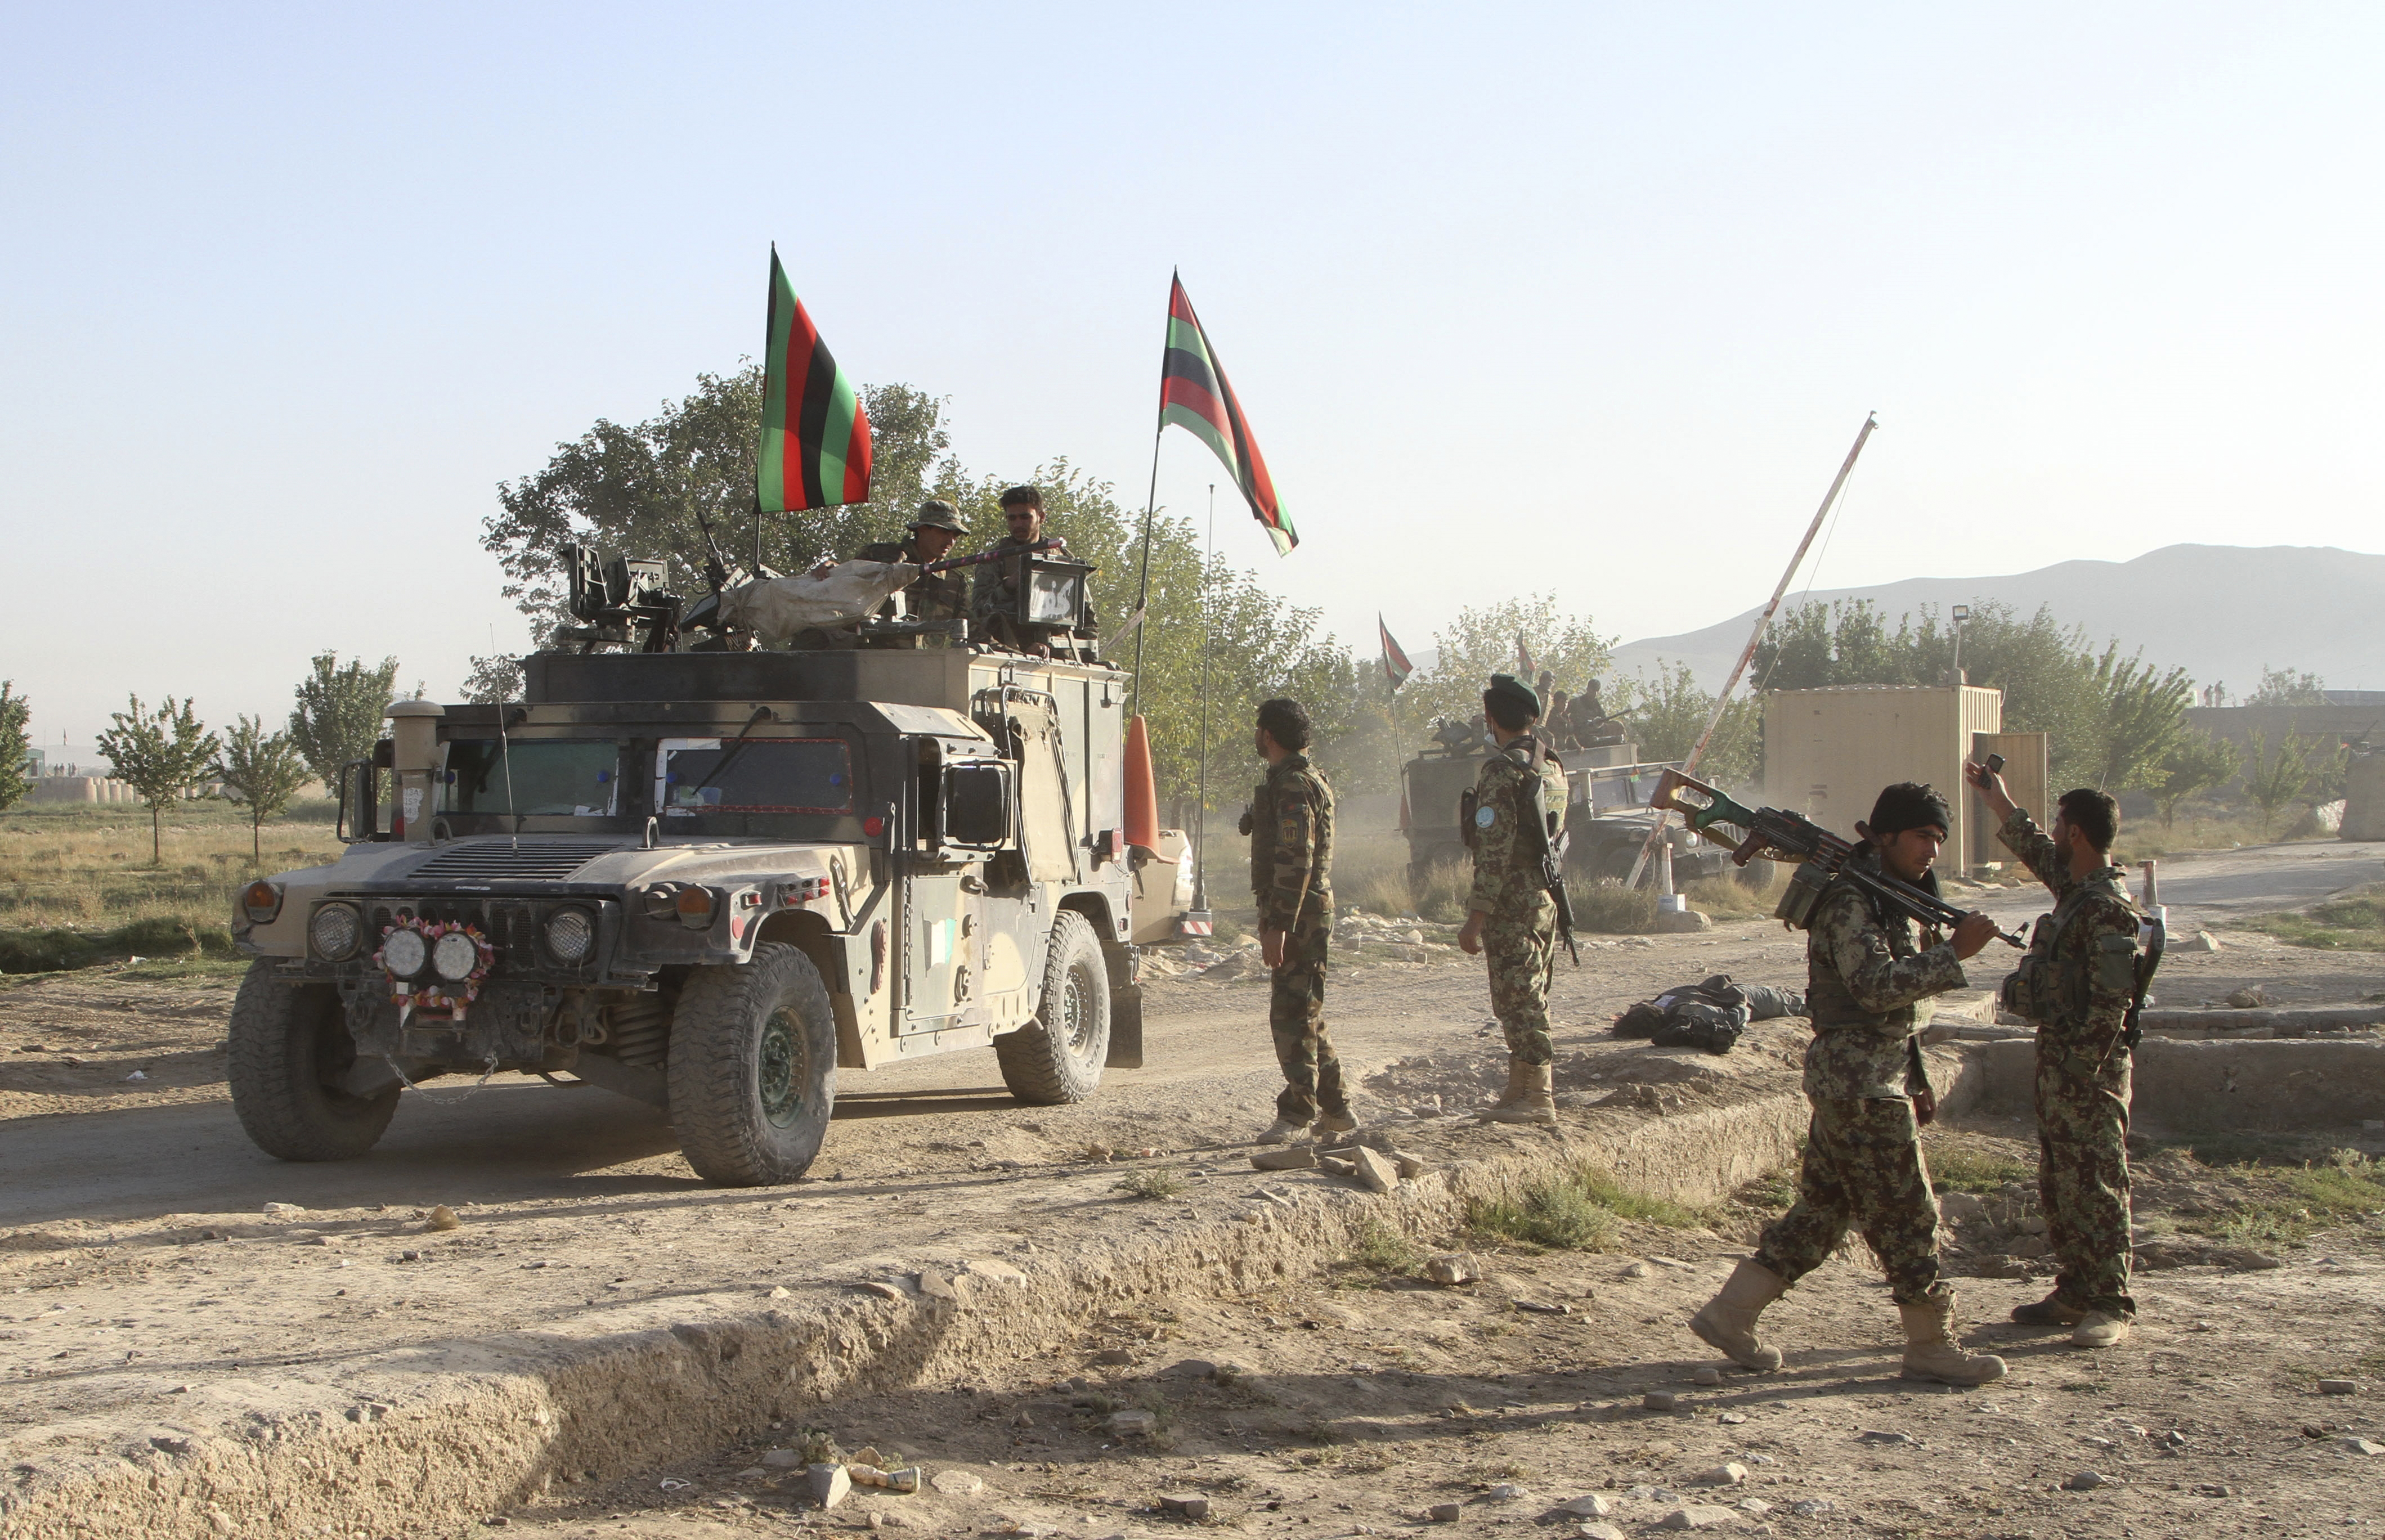 Members of the Afghan national army stand guard near the dead body of a Taliban attacker in front of the main prison building after an attack in Ghazni province, eastern Afghanistan, on Sept. 14, 2015